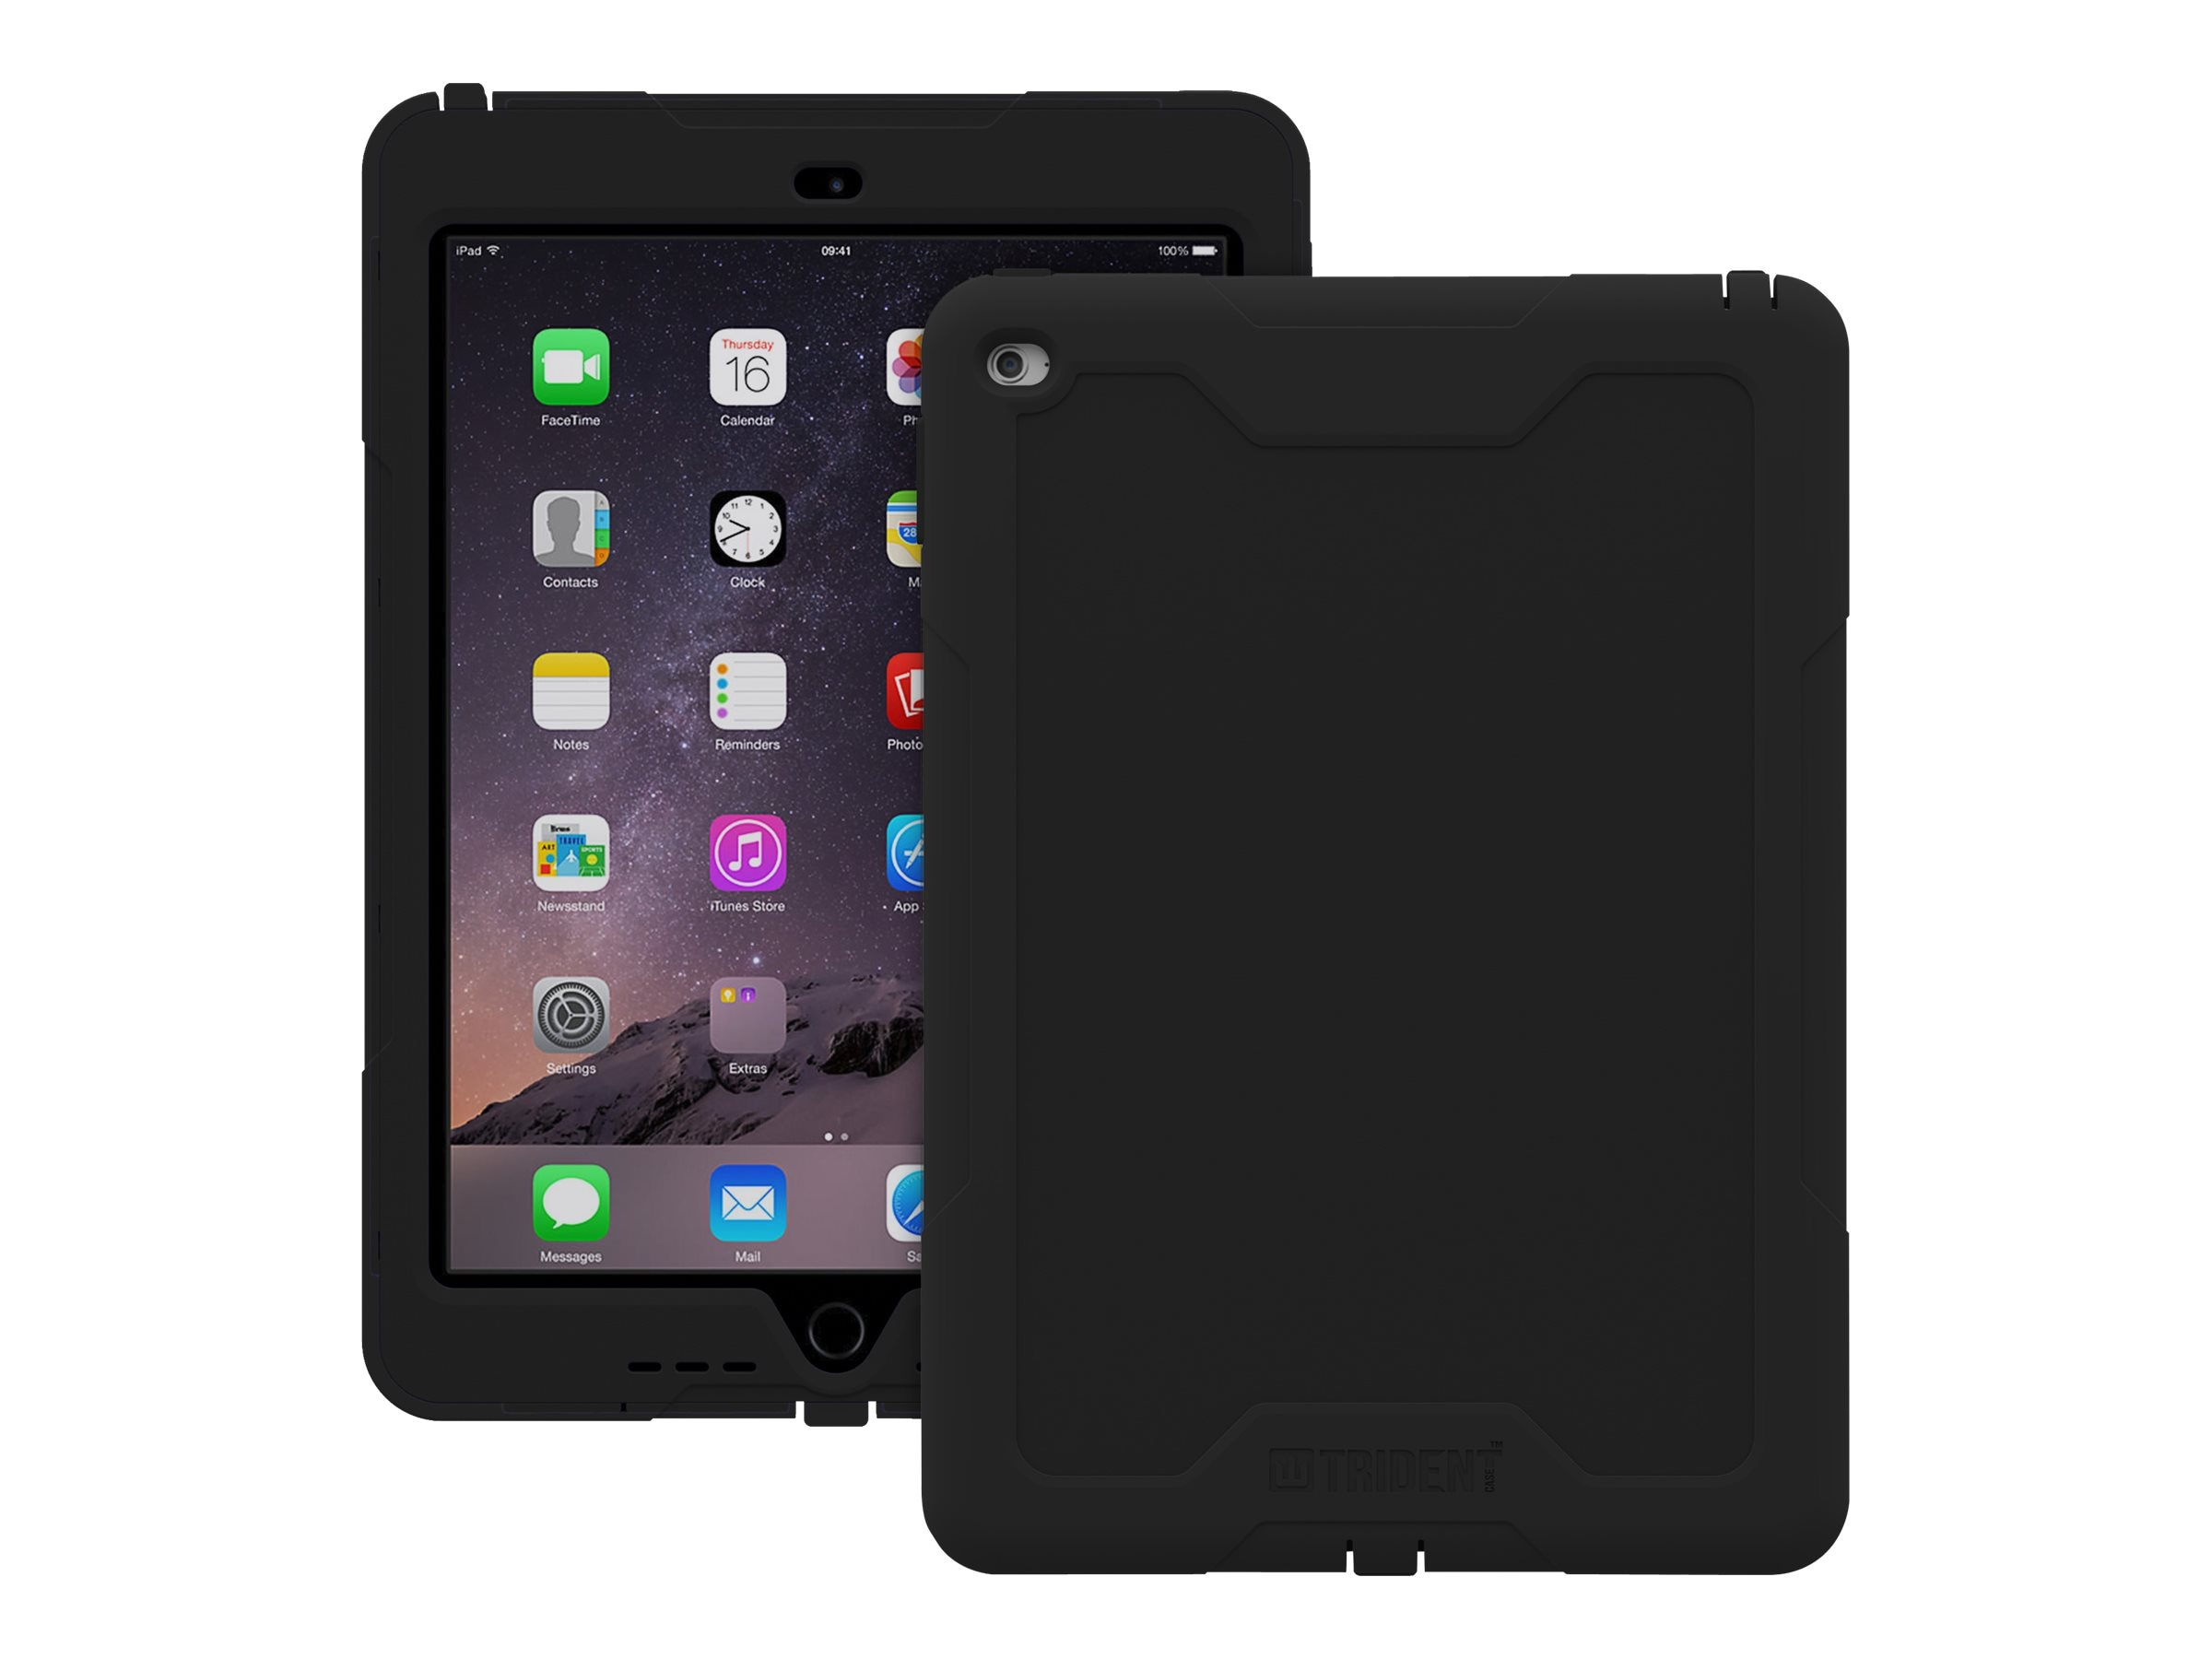 Trident Case 2015 Cyclops Case for iPad Air 2, Black, CY-APIPA2-BK000, 19013661, Carrying Cases - Tablets & eReaders